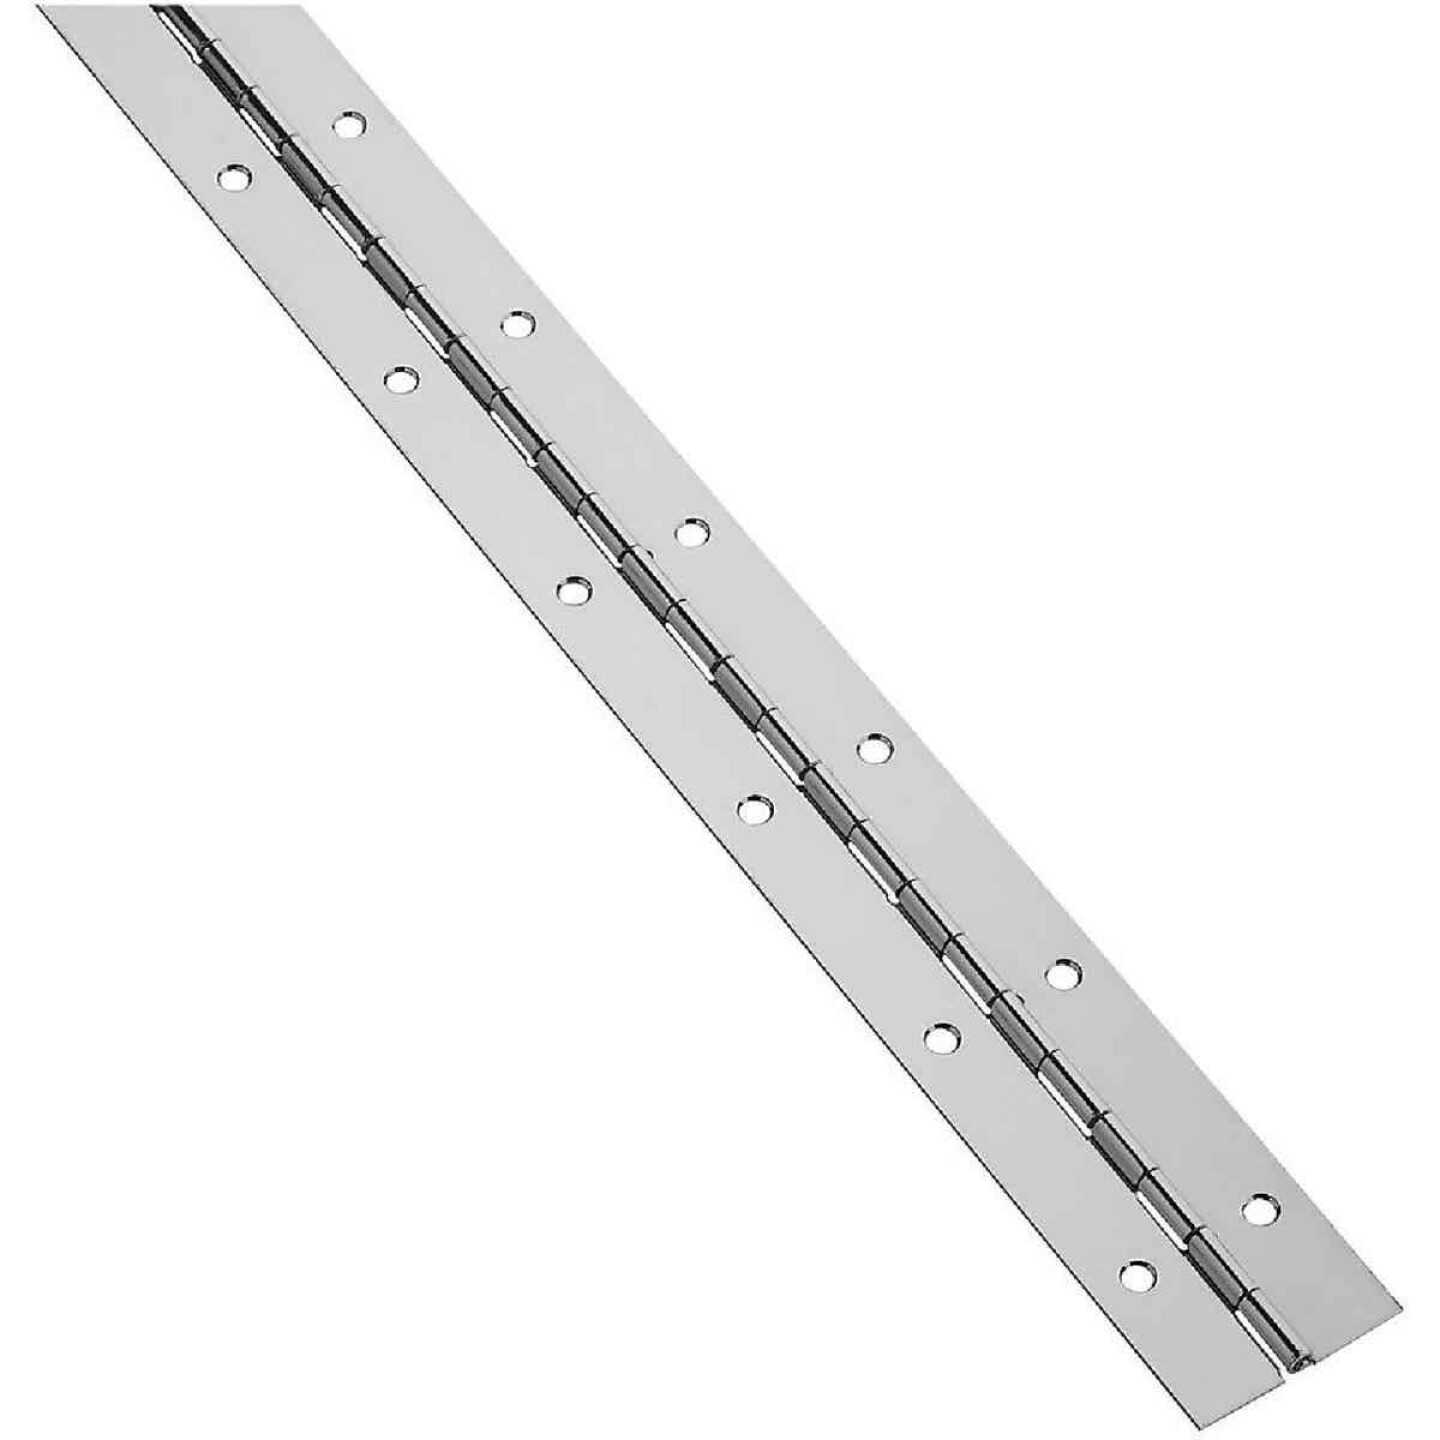 National Steel 1-1/2 In. x 72 In. Nickel Continuous Hinge Image 1